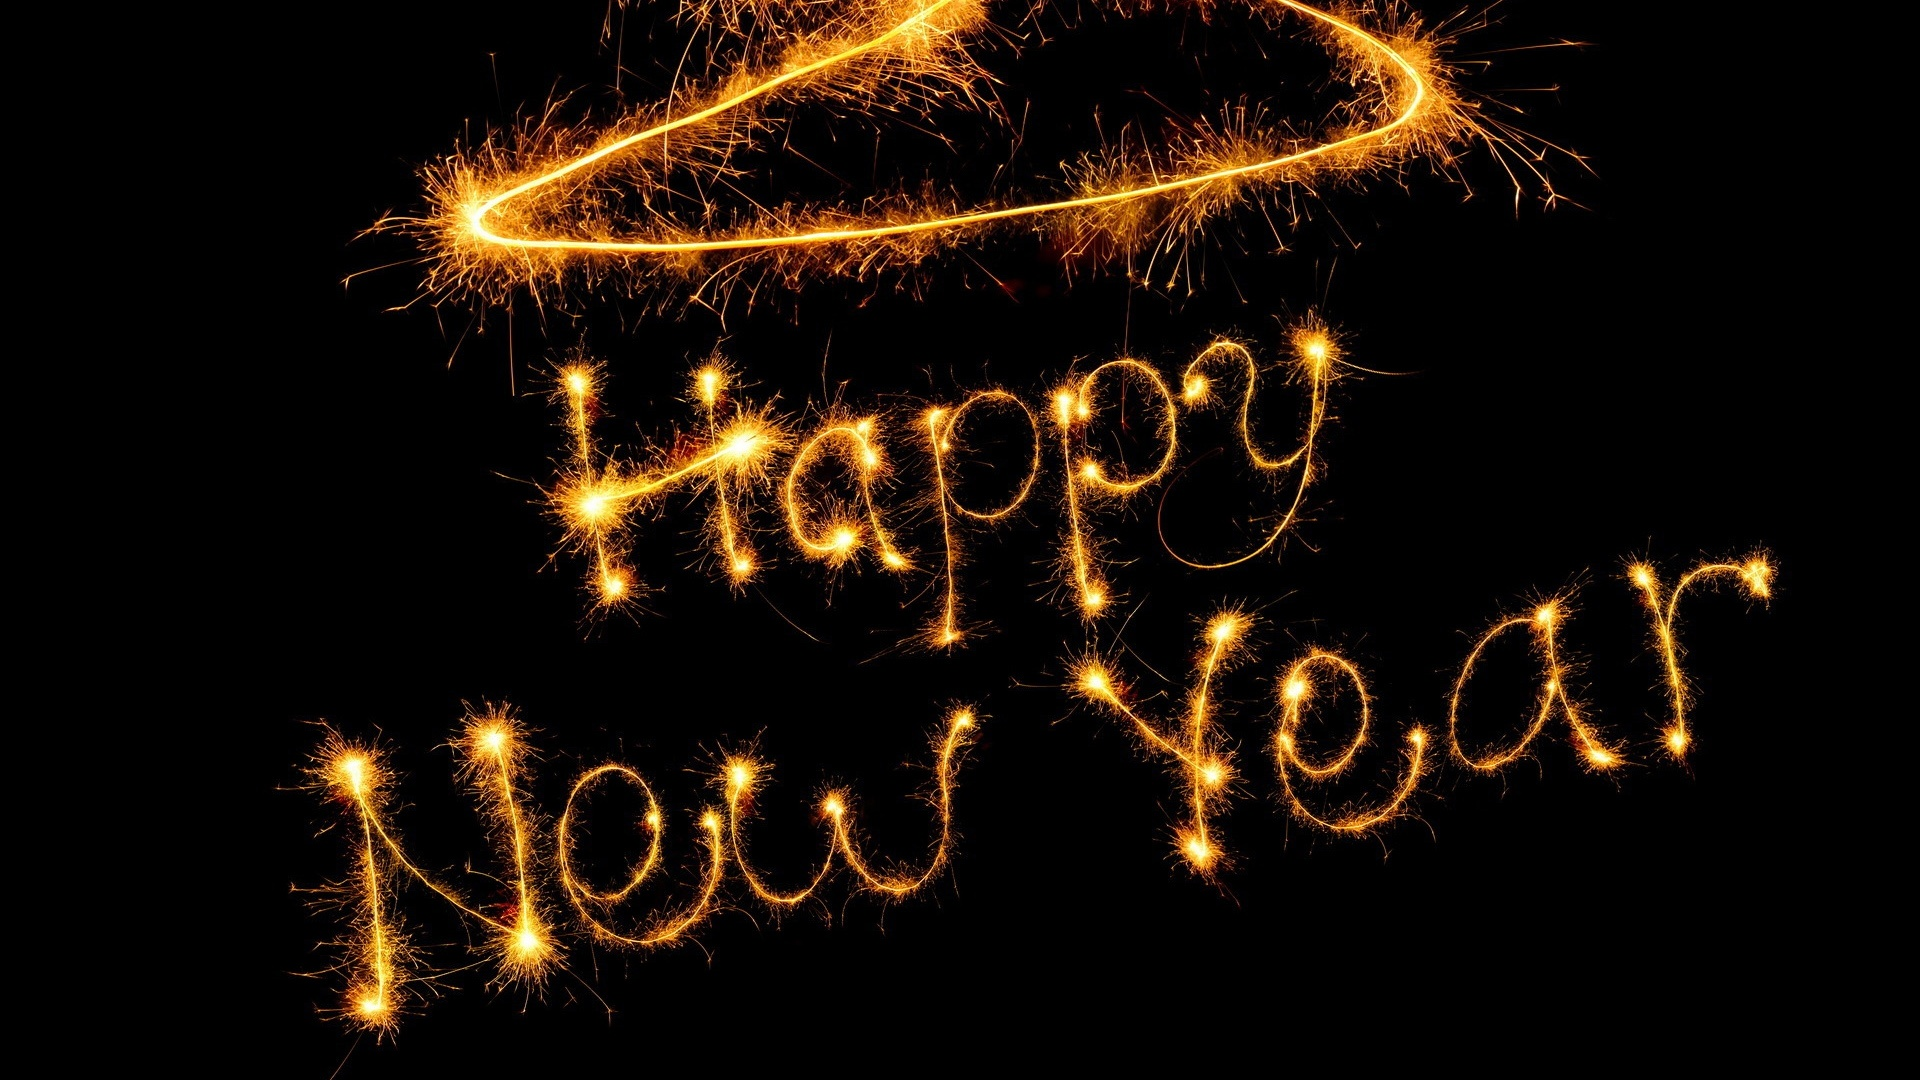 Beautiful Happy New Year 2014 HD Wallpaper Picture Image Free Download